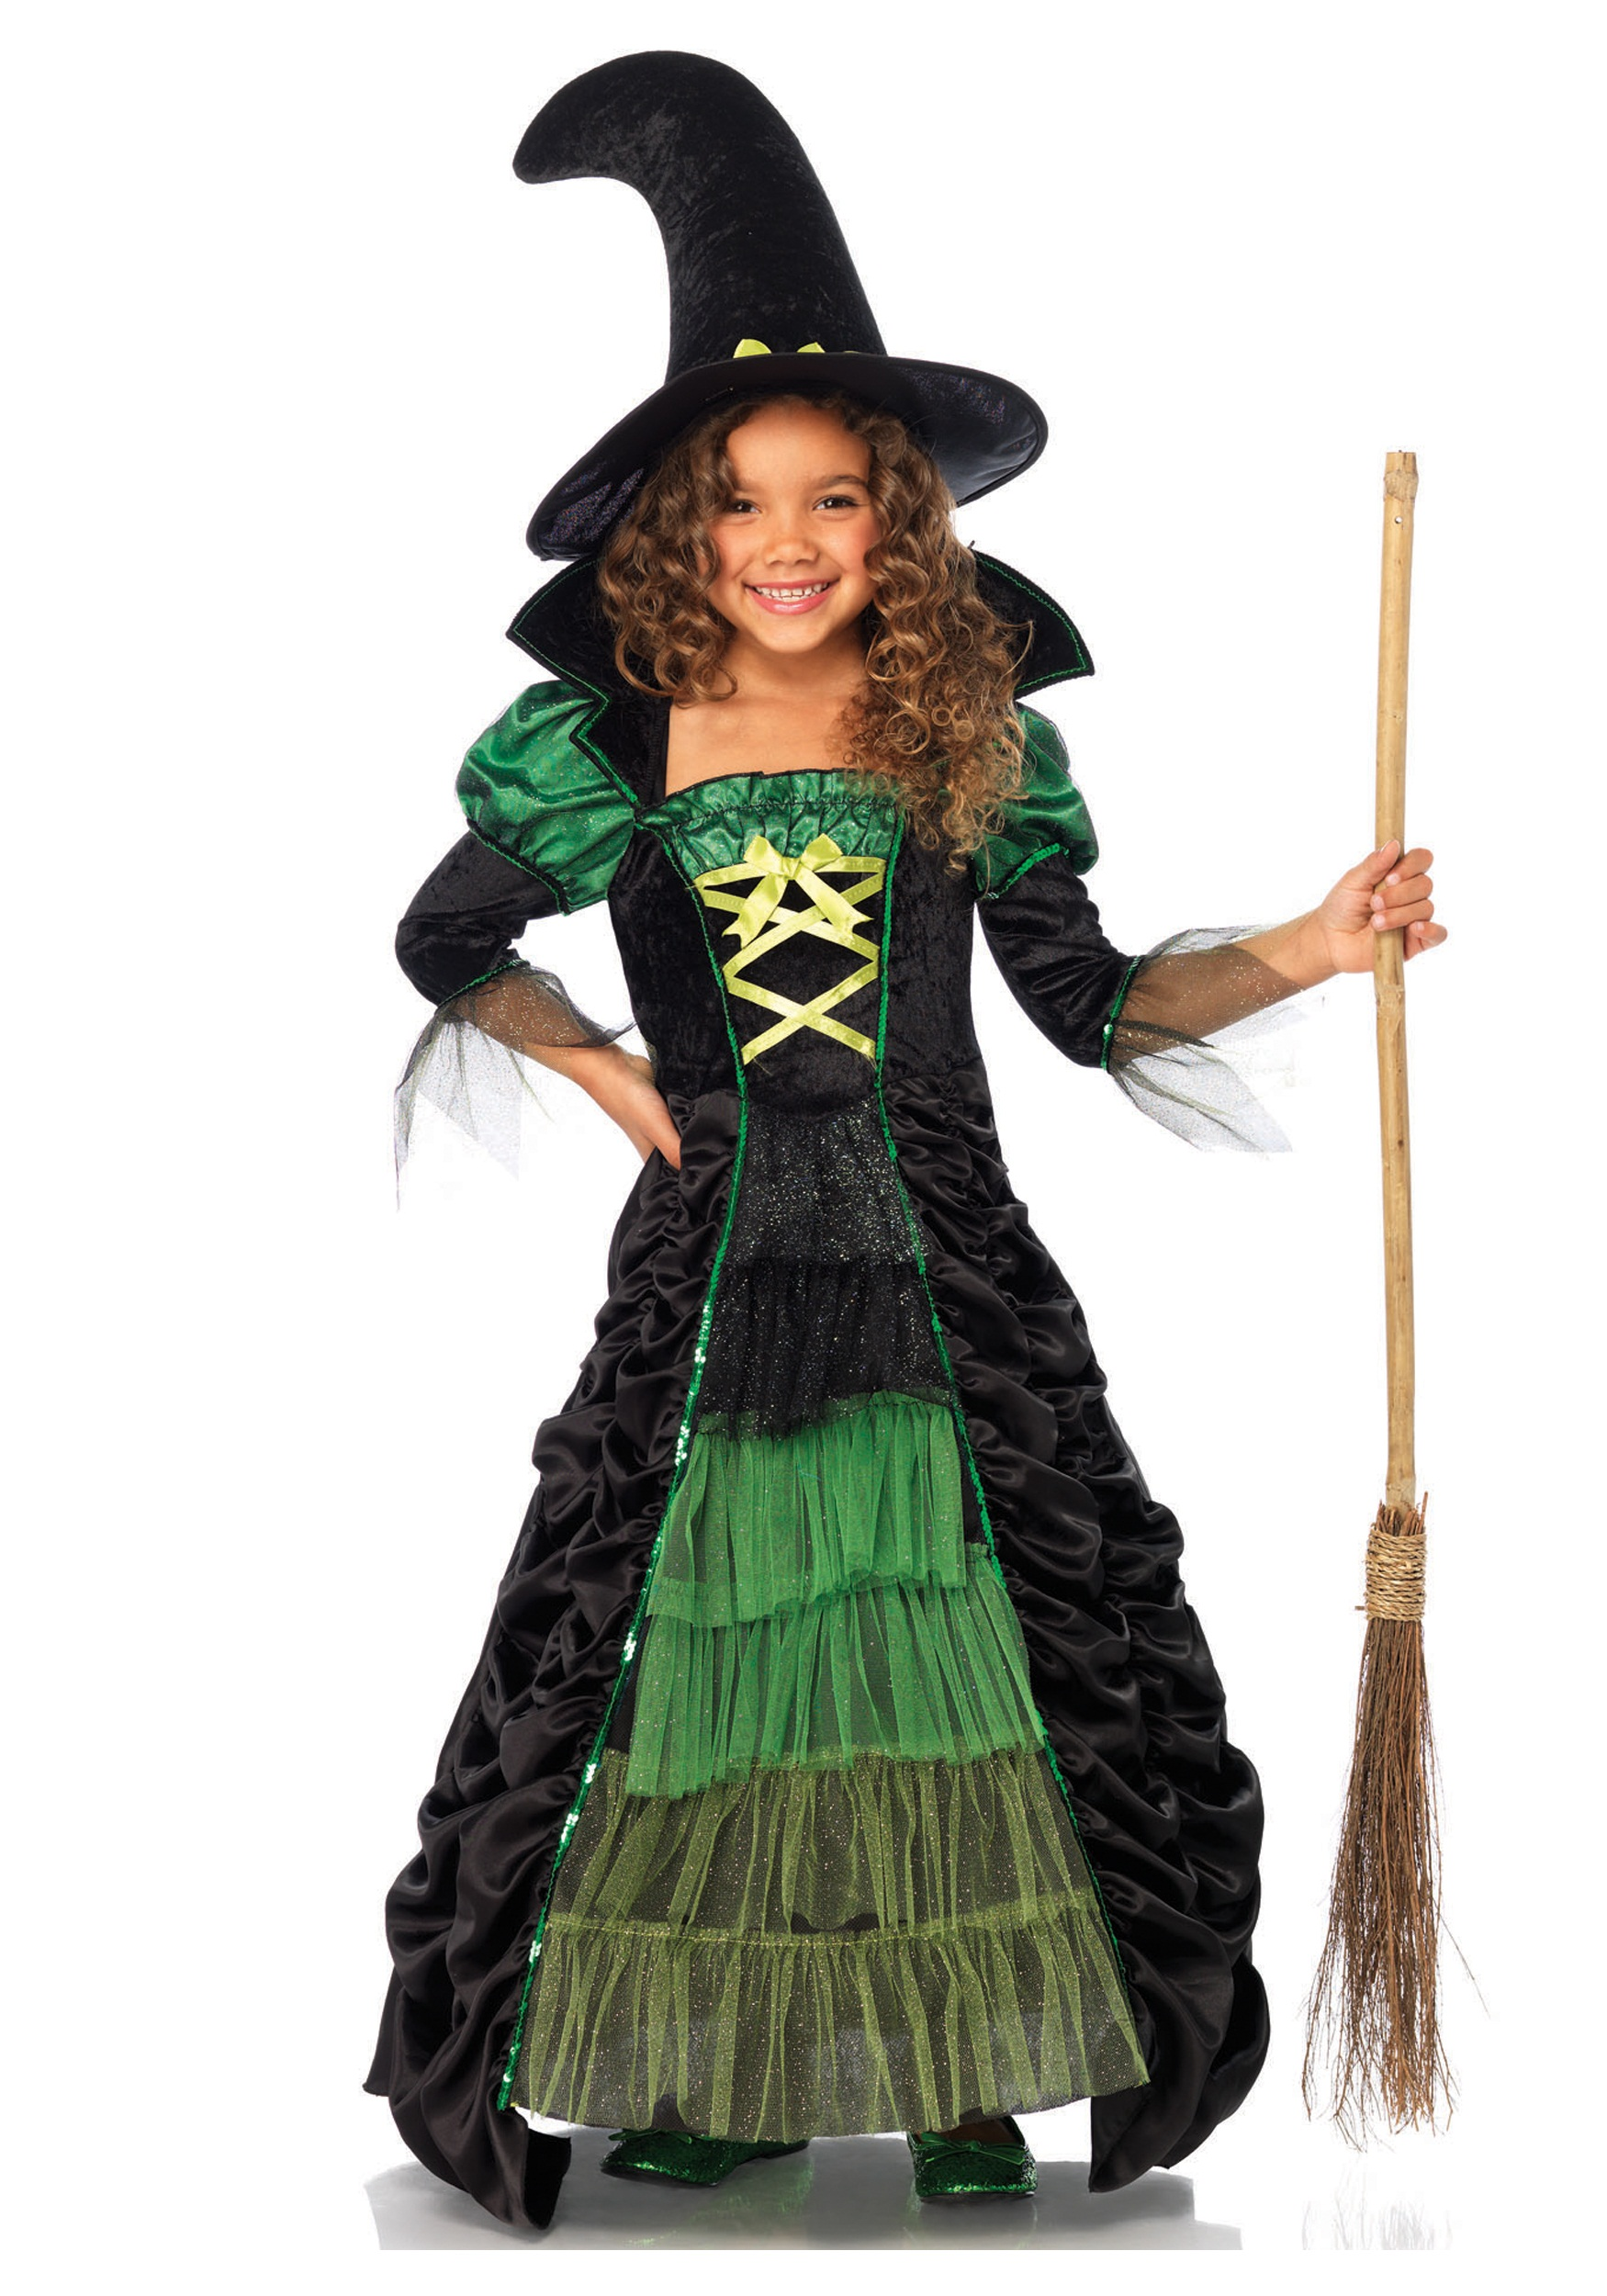 Oz Witch Costumes - HalloweenCostumes.com